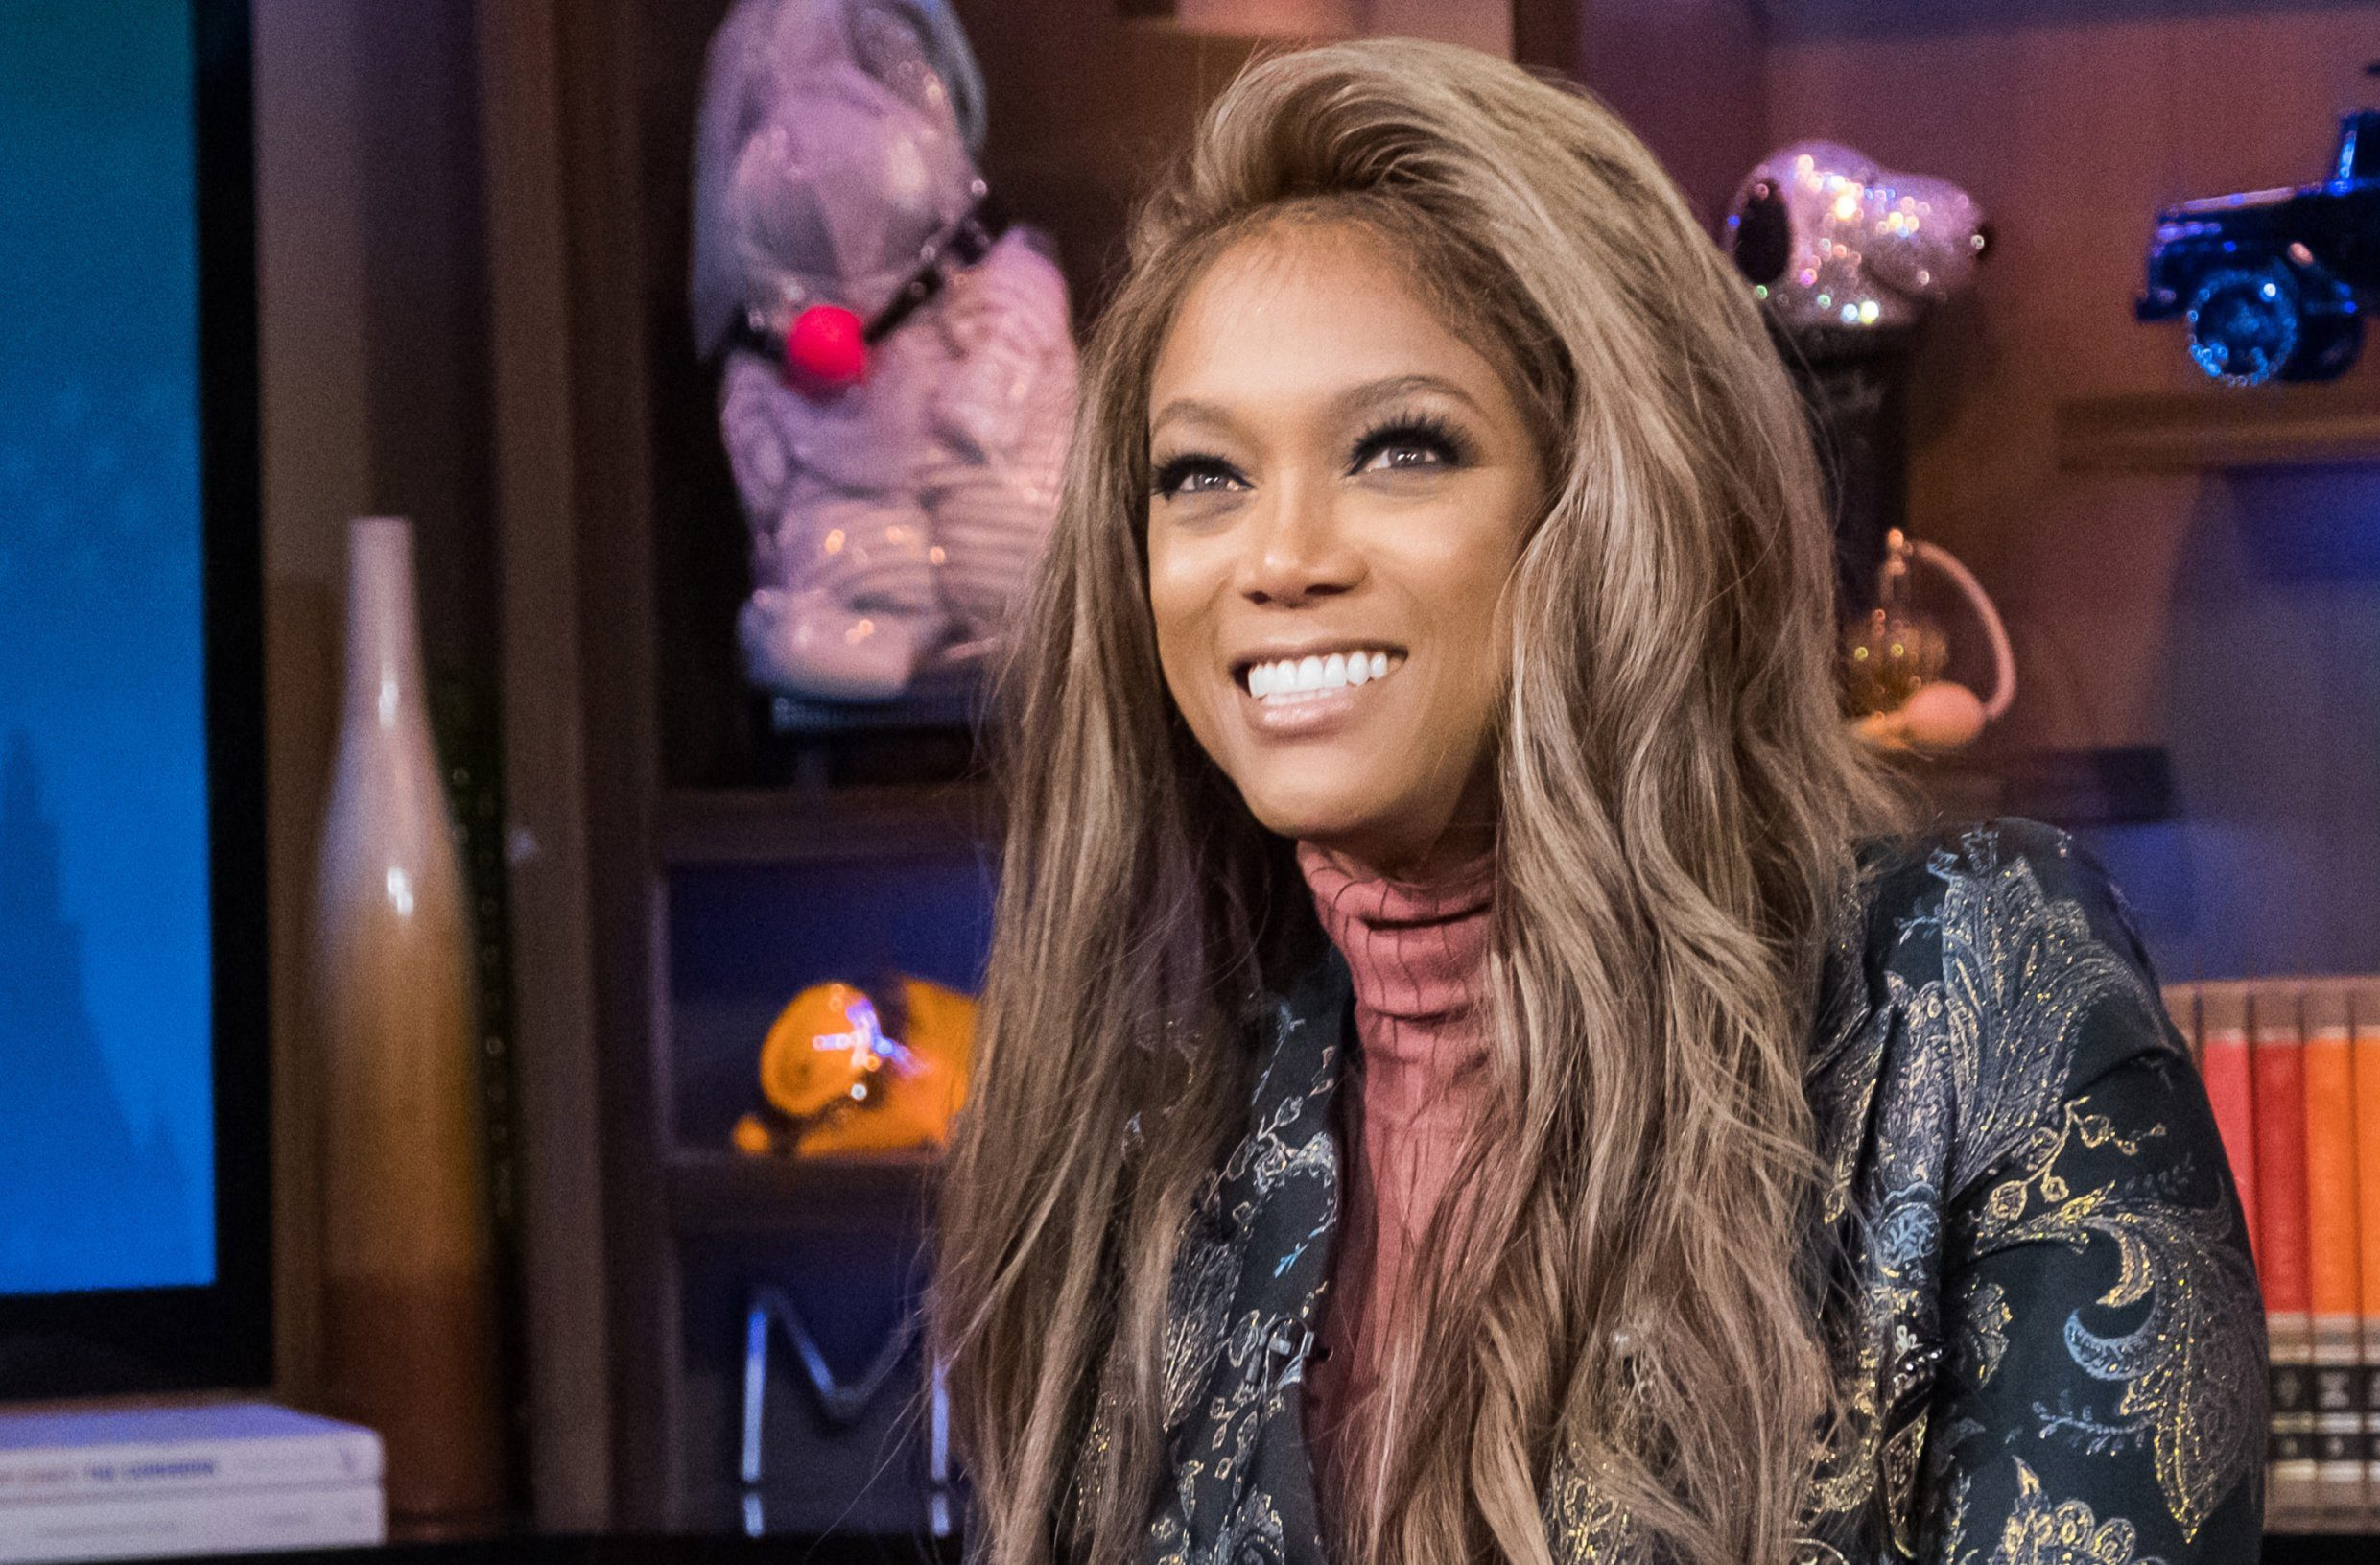 WATCH WHAT HAPPENS LIVE WITH ANDY COHEN -- Pictured: Tyra Banks -- (Photo by: Charles Sykes/Bravo/NBCU Photo Bank via Getty Images)